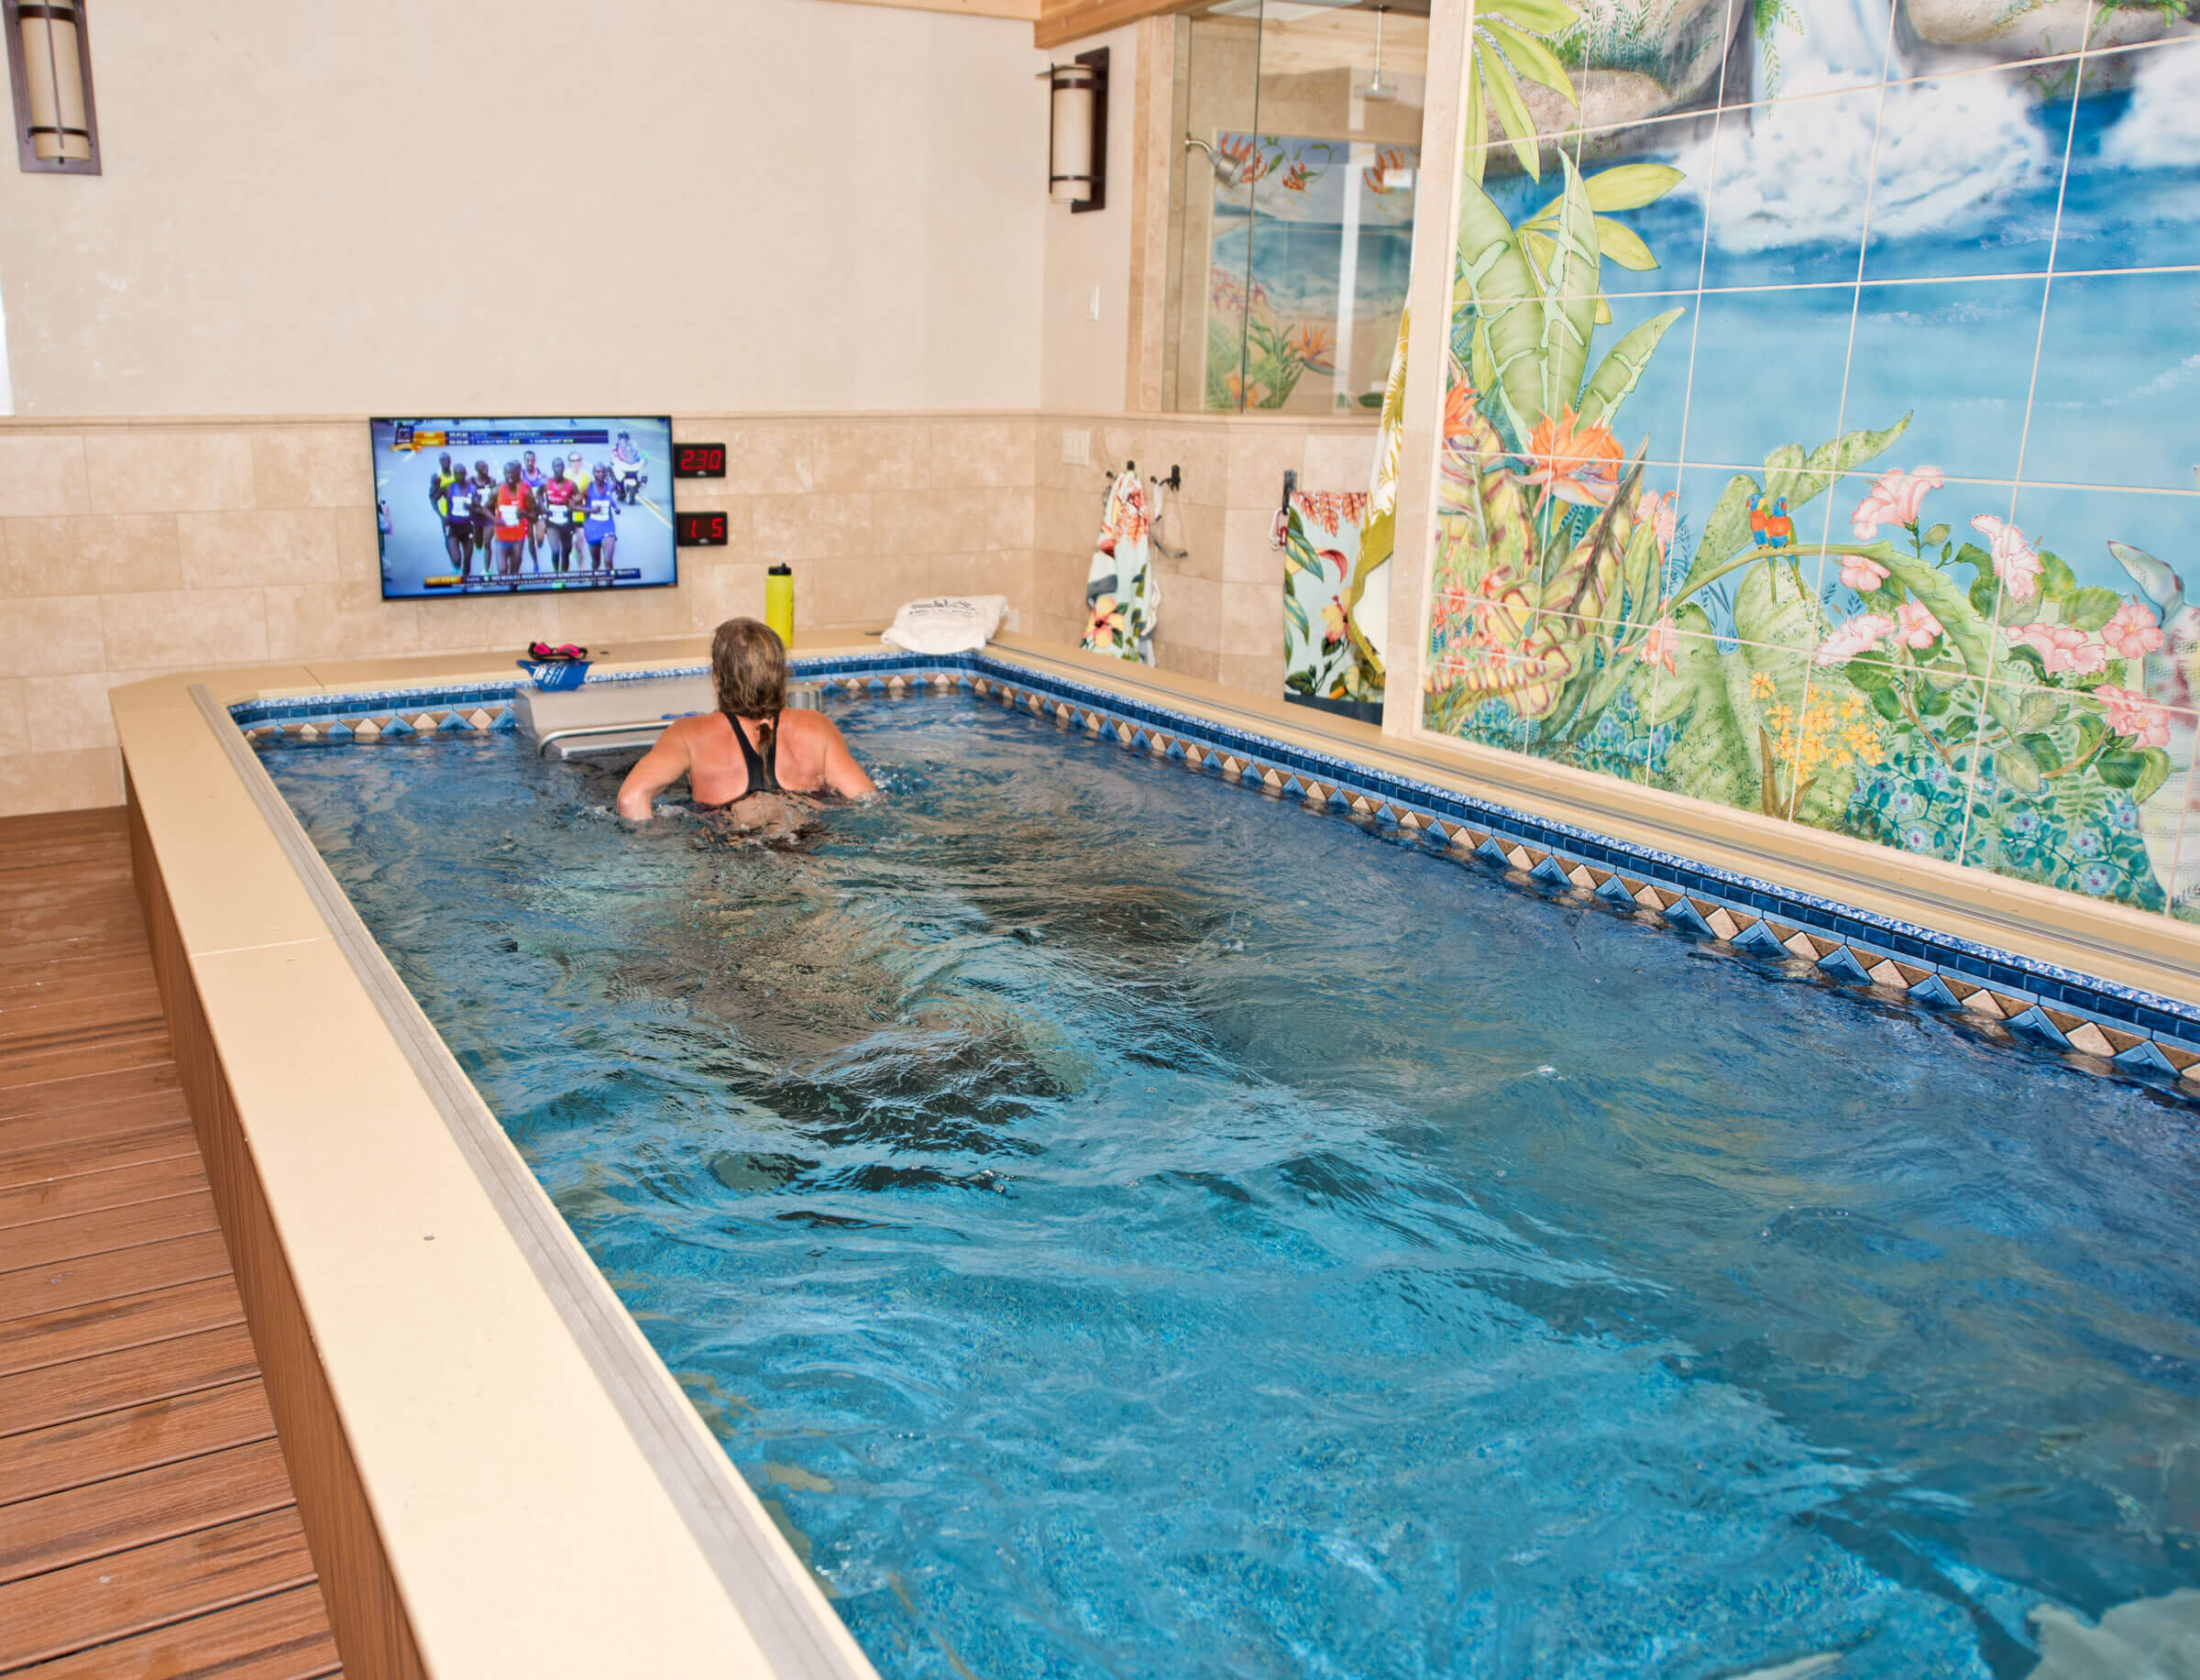 a woman runs on the Underwater Treadmill in her Performance Endless Pool while watching television